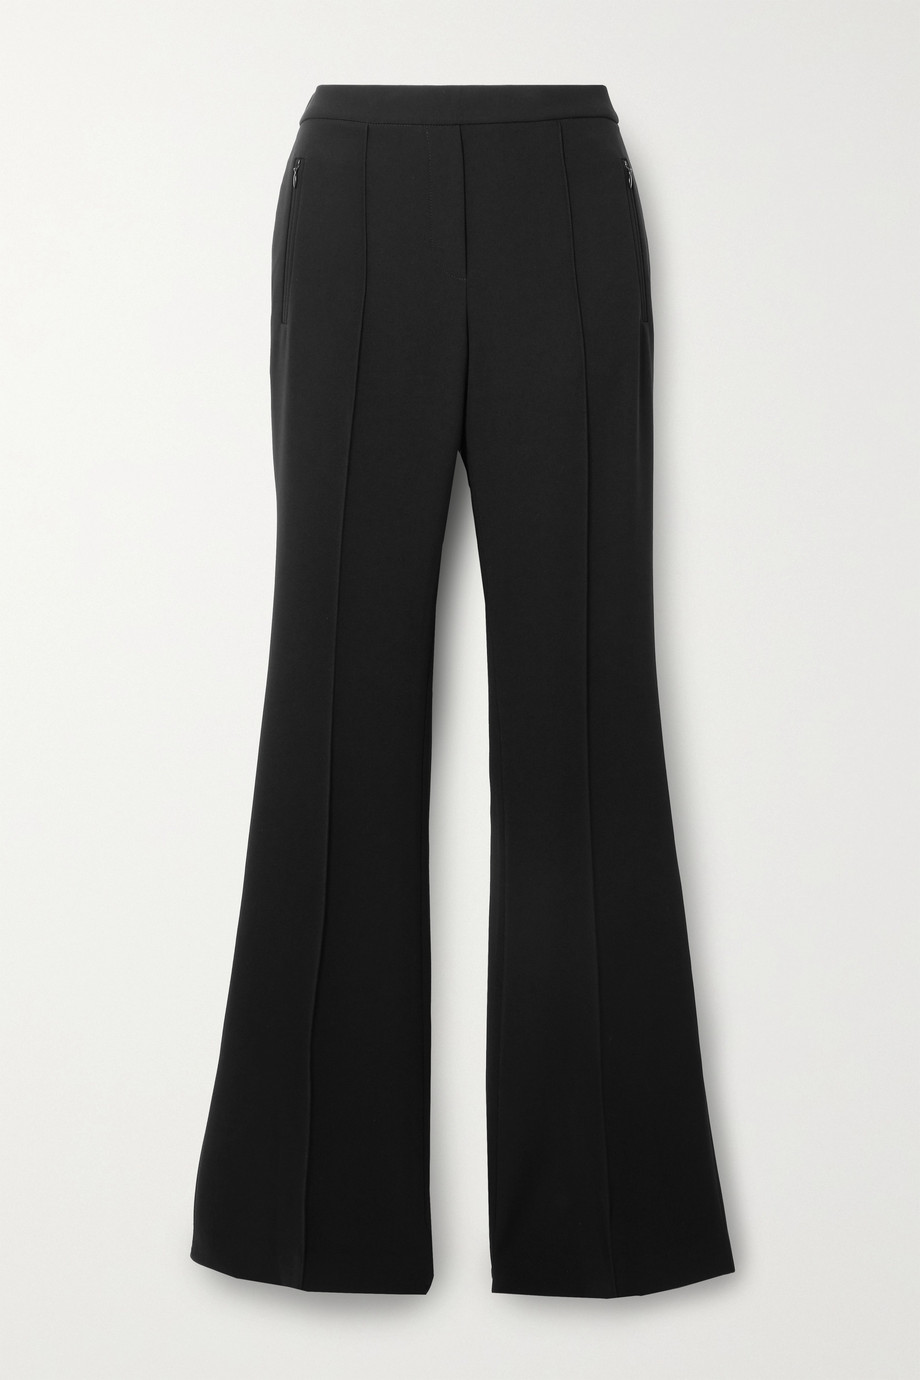 Theory Demitria crepe flared pants